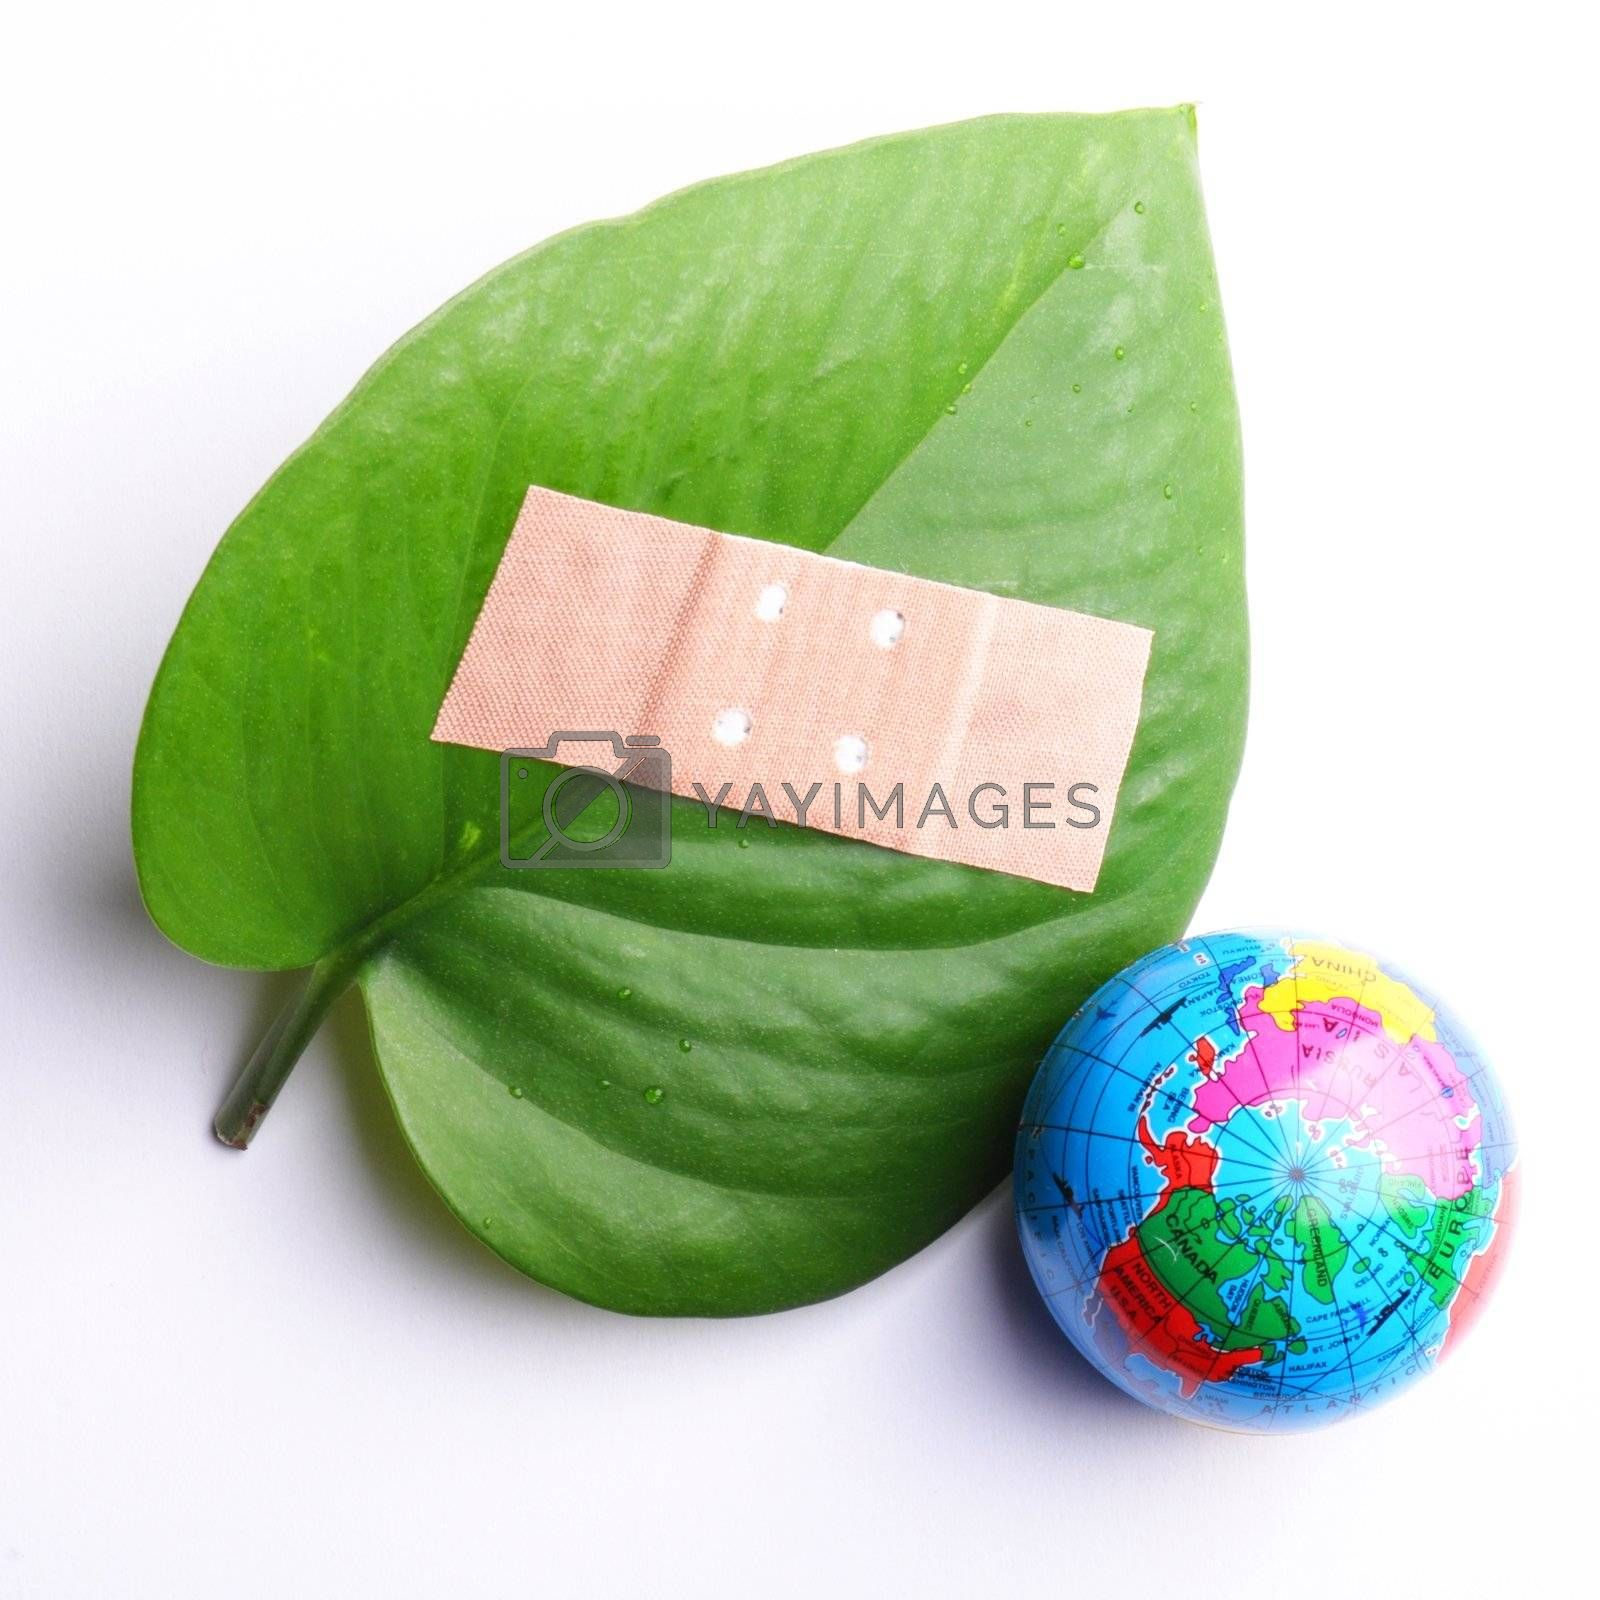 eco ecology ecological nature or environmental concept with green leaf and band aid on white